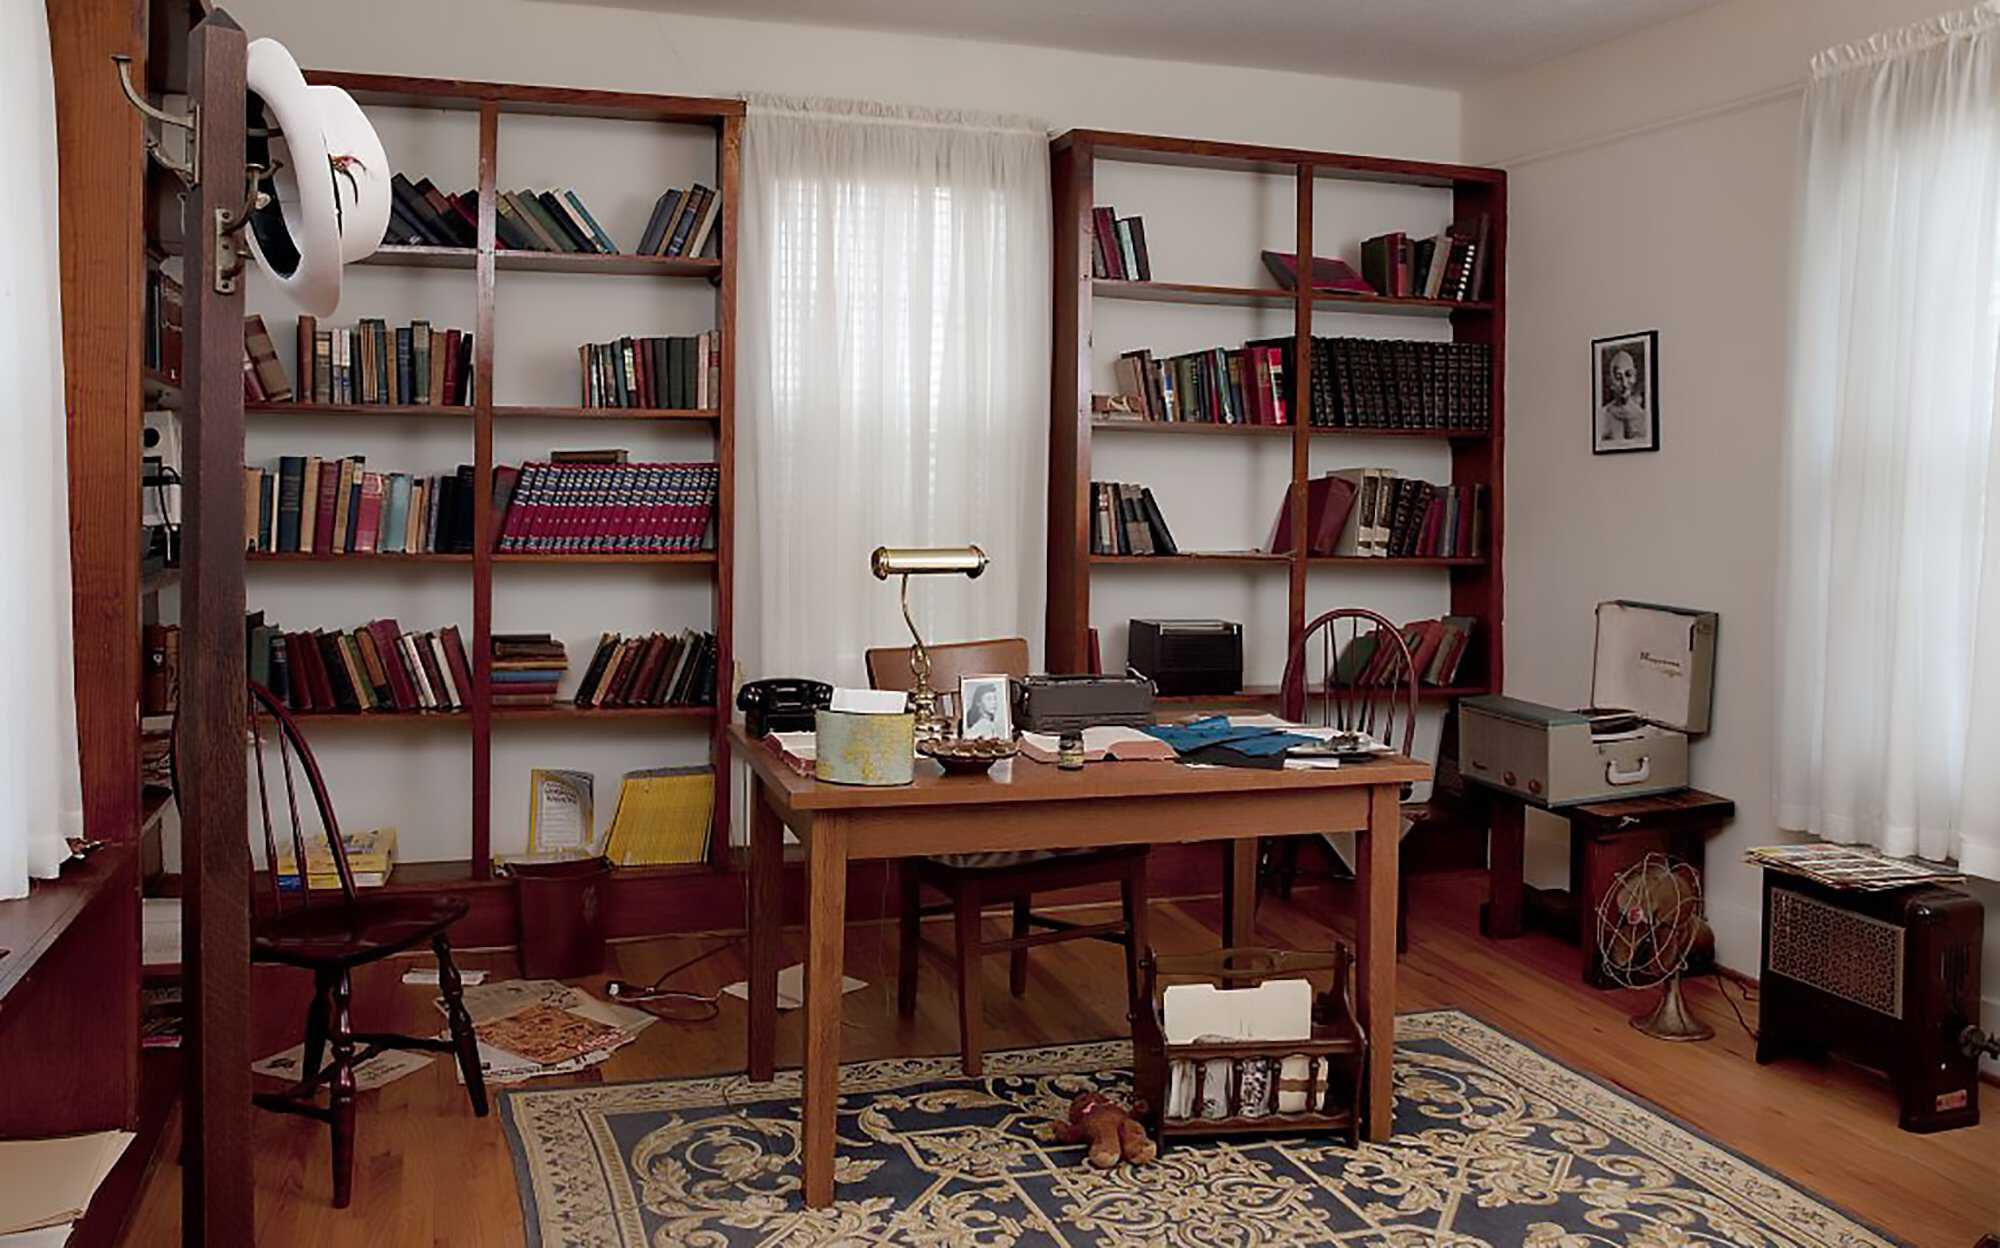 King-bookshelf-Martin-Luther-King's-study,-Dexter-Parsonage-Museum,-Montgomery,-Alabama-1946-LOC.jpg